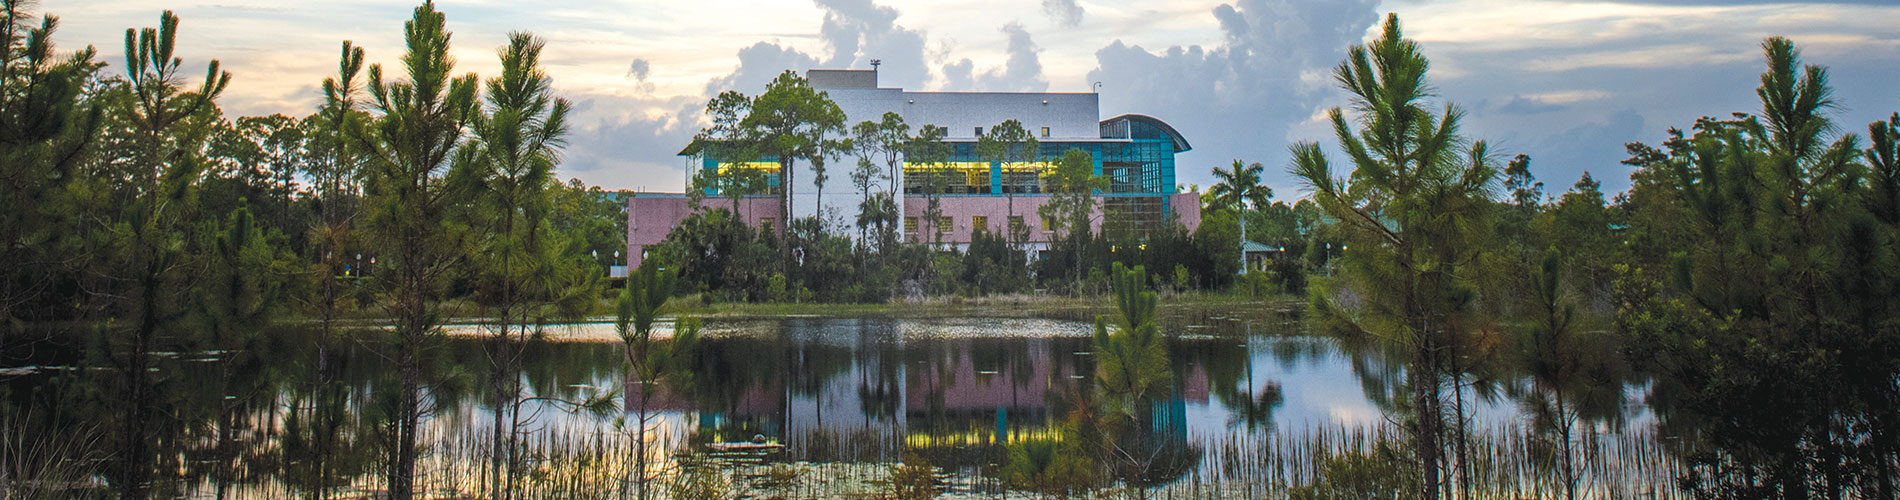 Photo of FGCU Library across the lake